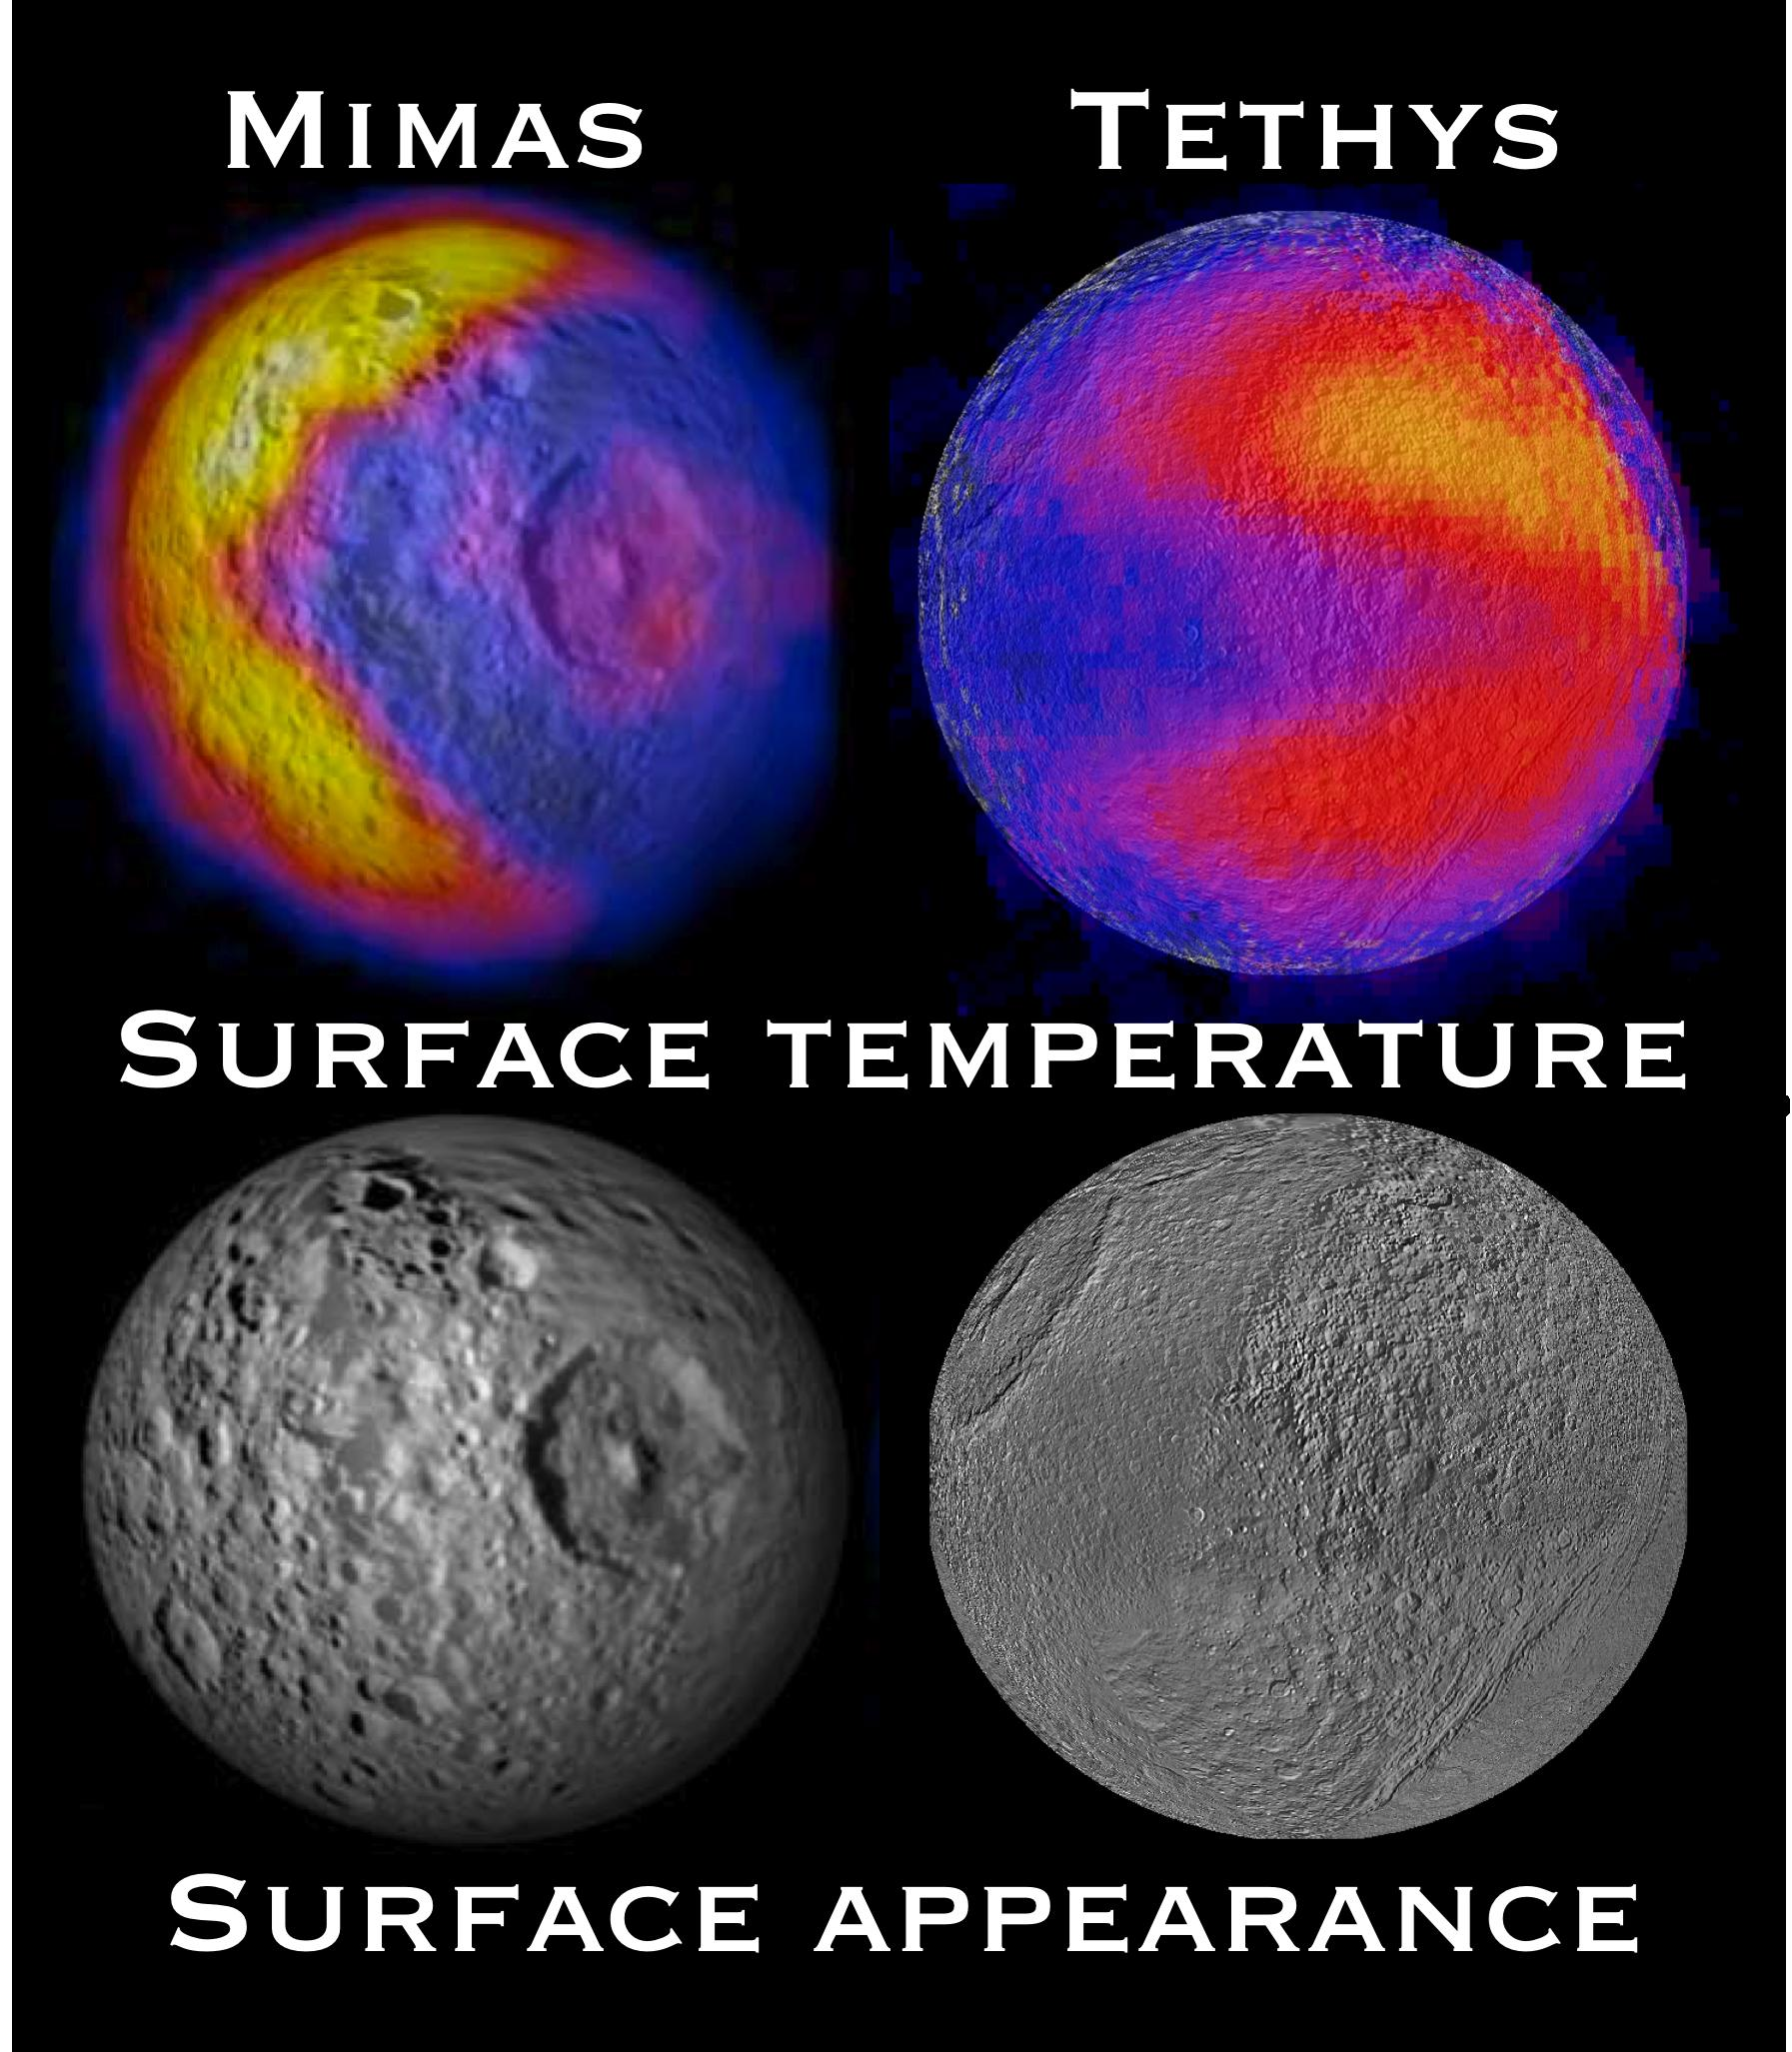 Mimas and Tethys